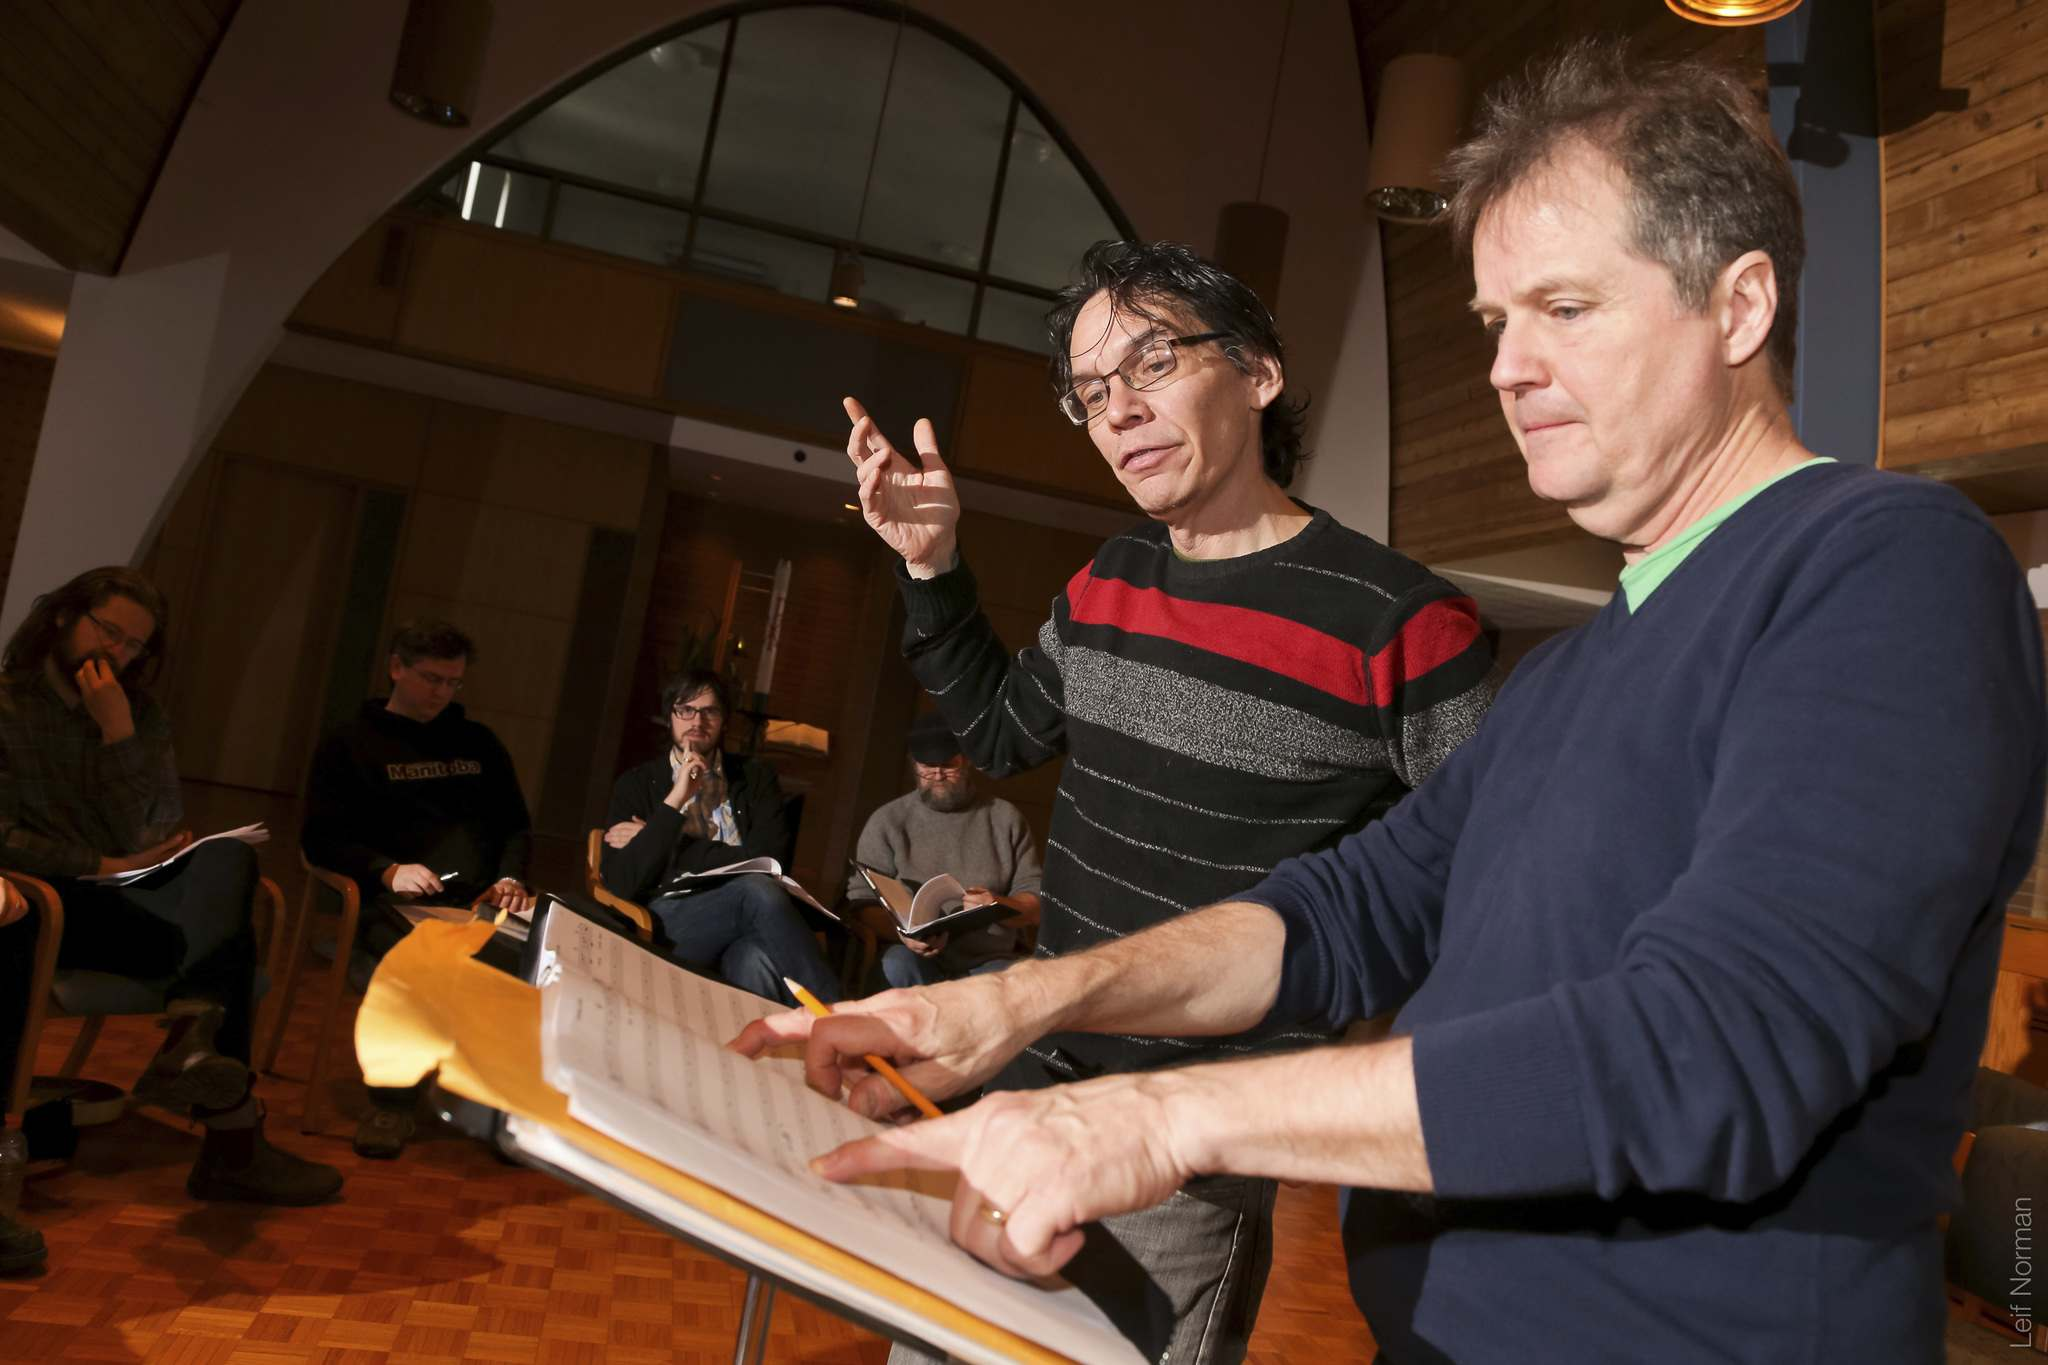 Leif Norman photo</p><p>Camerata Nova artistic director Andrew Balfour goes over a score with conductor Mel Braun.</p></p>